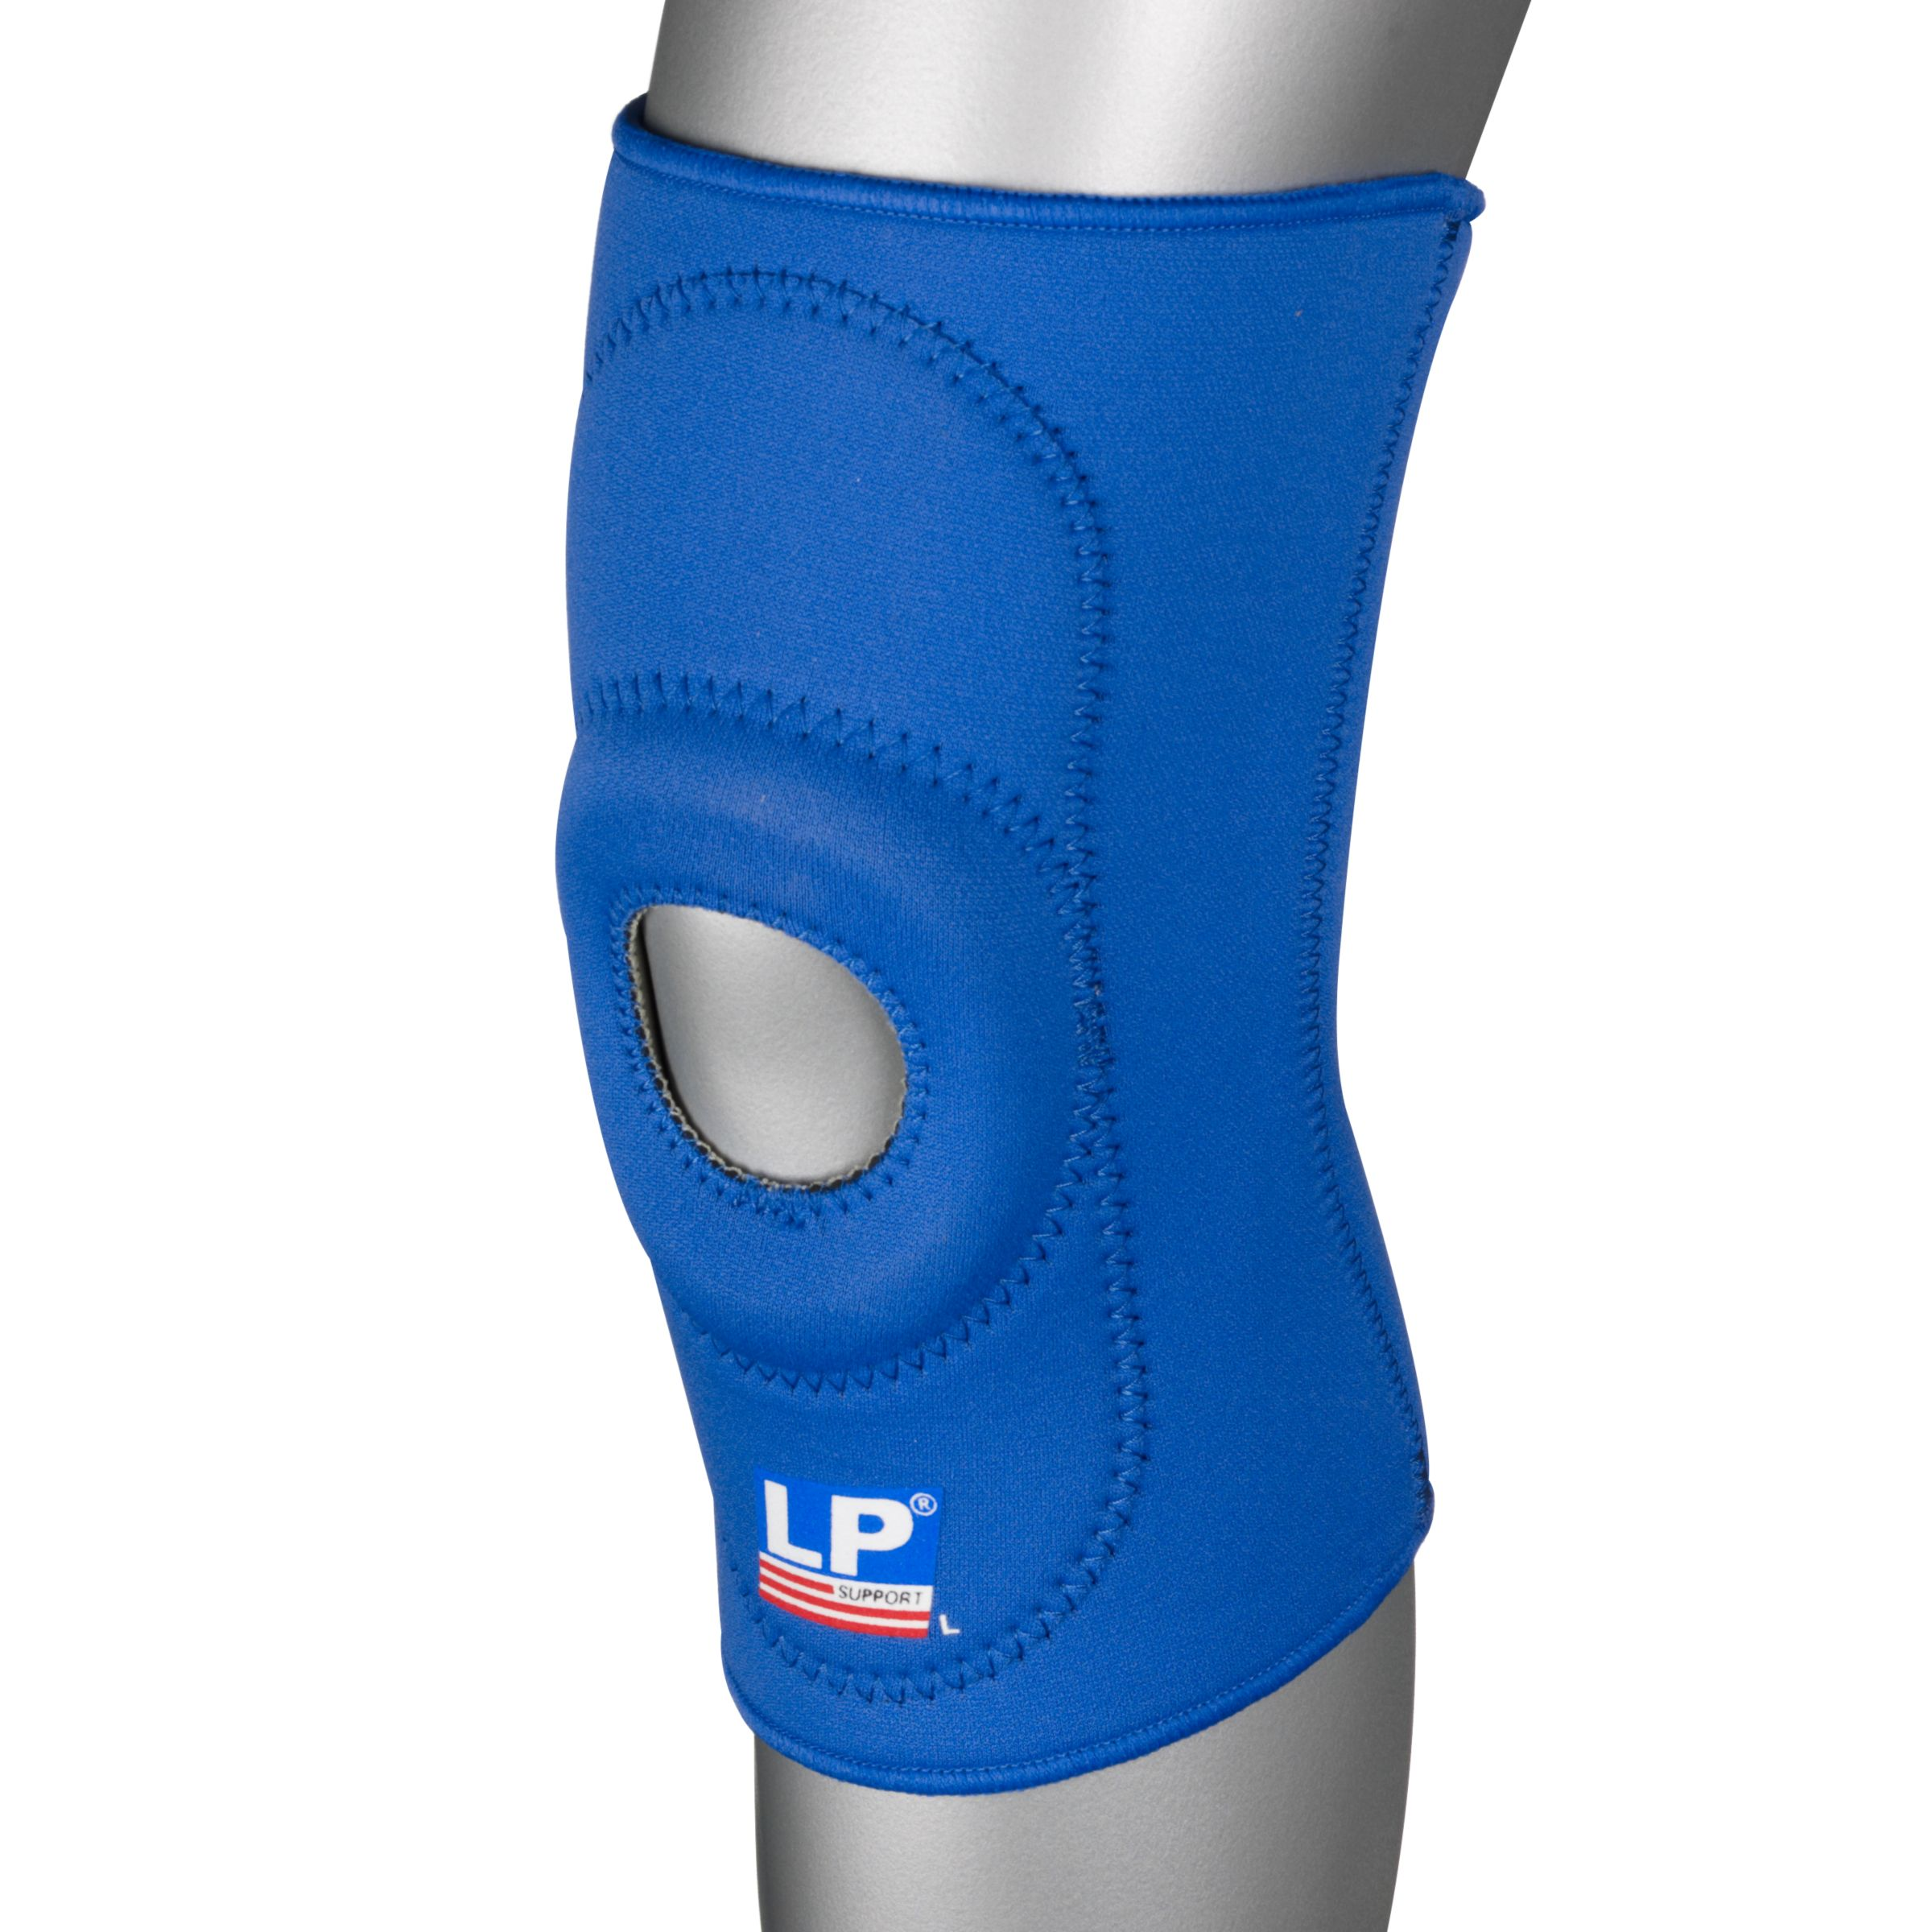 Lp Supports LP Supports Neoprene Open Knee Support, Blue